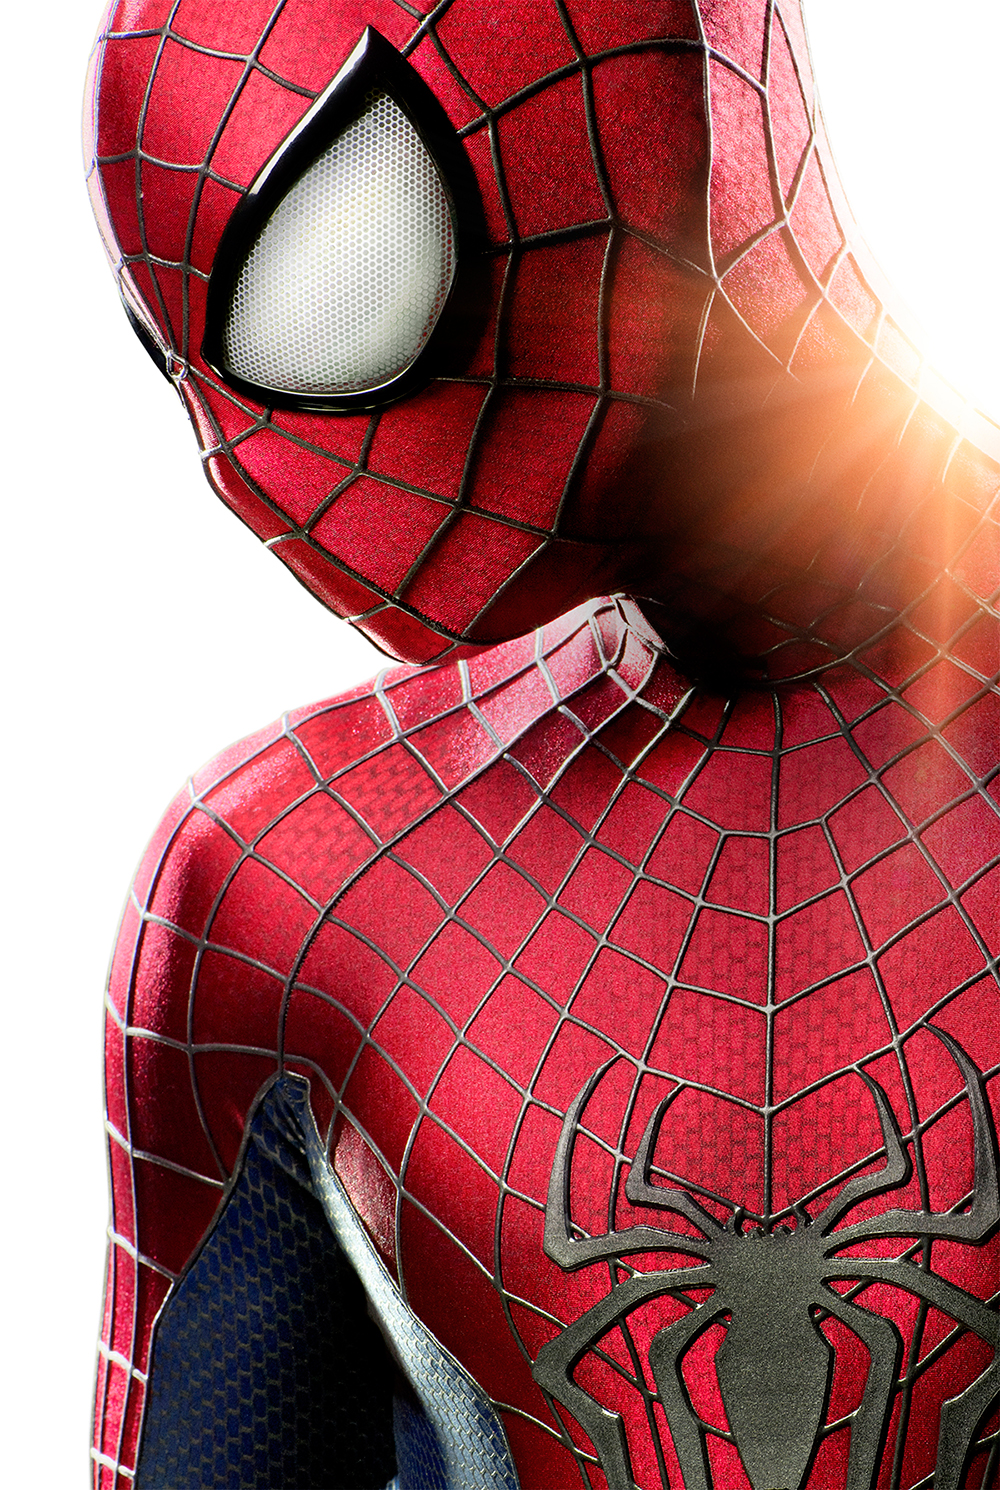 The amazing spider man costume poster